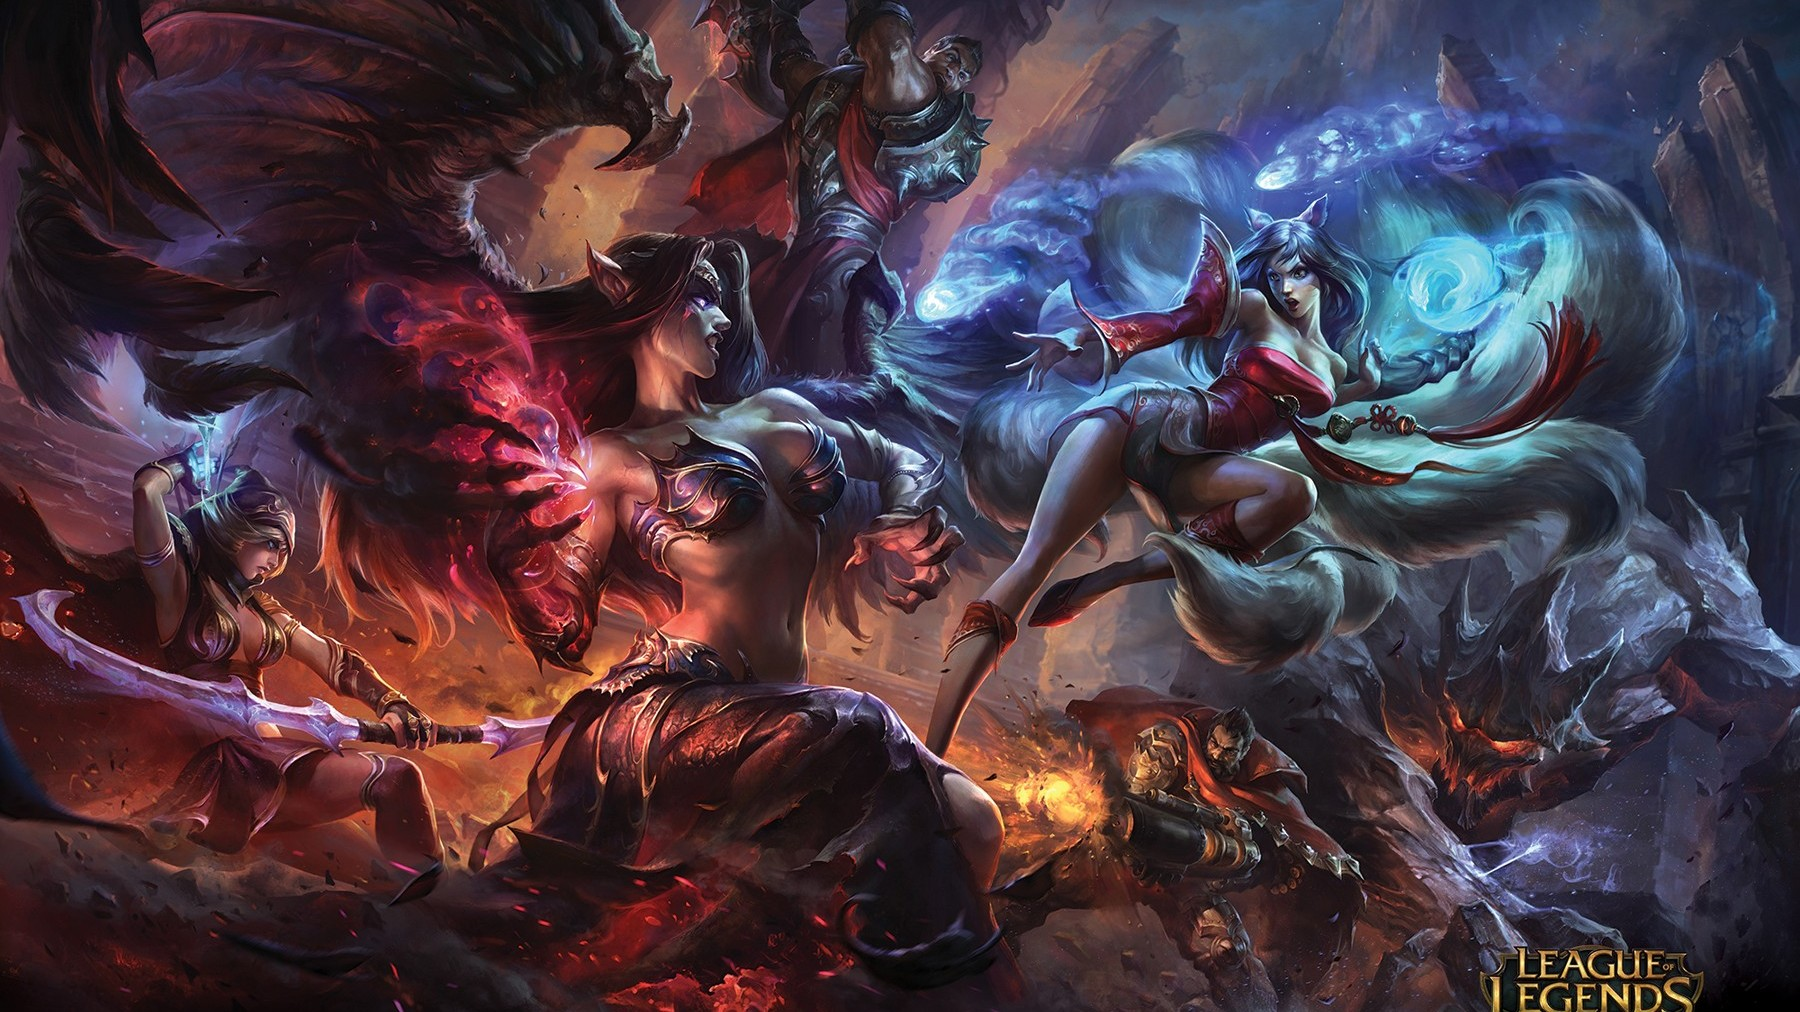 The 'League of Legends' Internet Works! Just Don't Ask About Net Neutrality